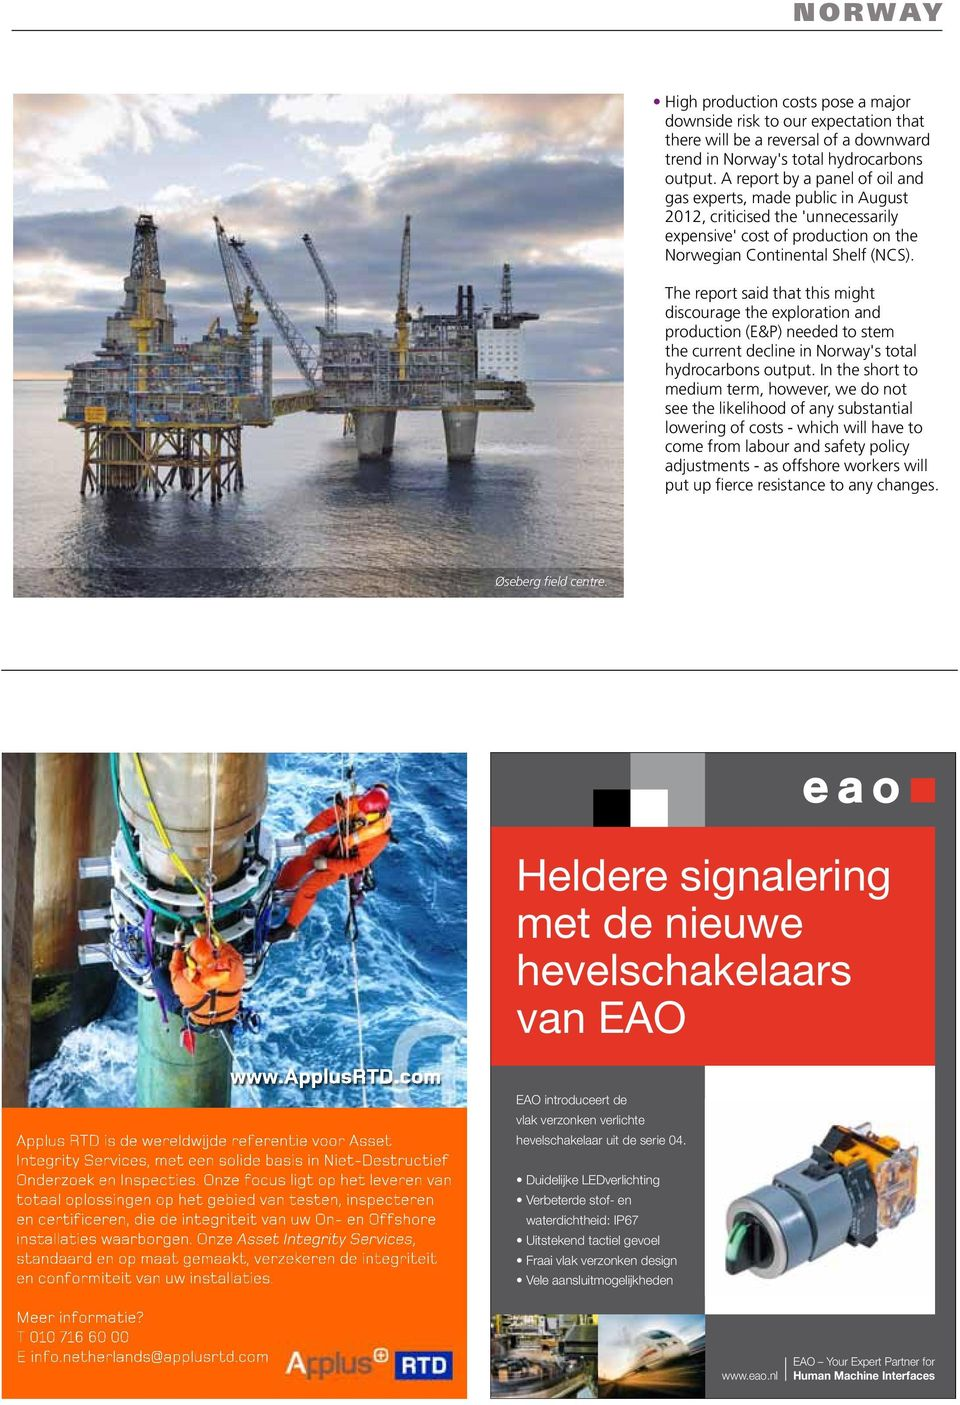 The report said that this might discourage the exploration and production (E&P) needed to stem the current decline in Norway's total hydrocarbons output.